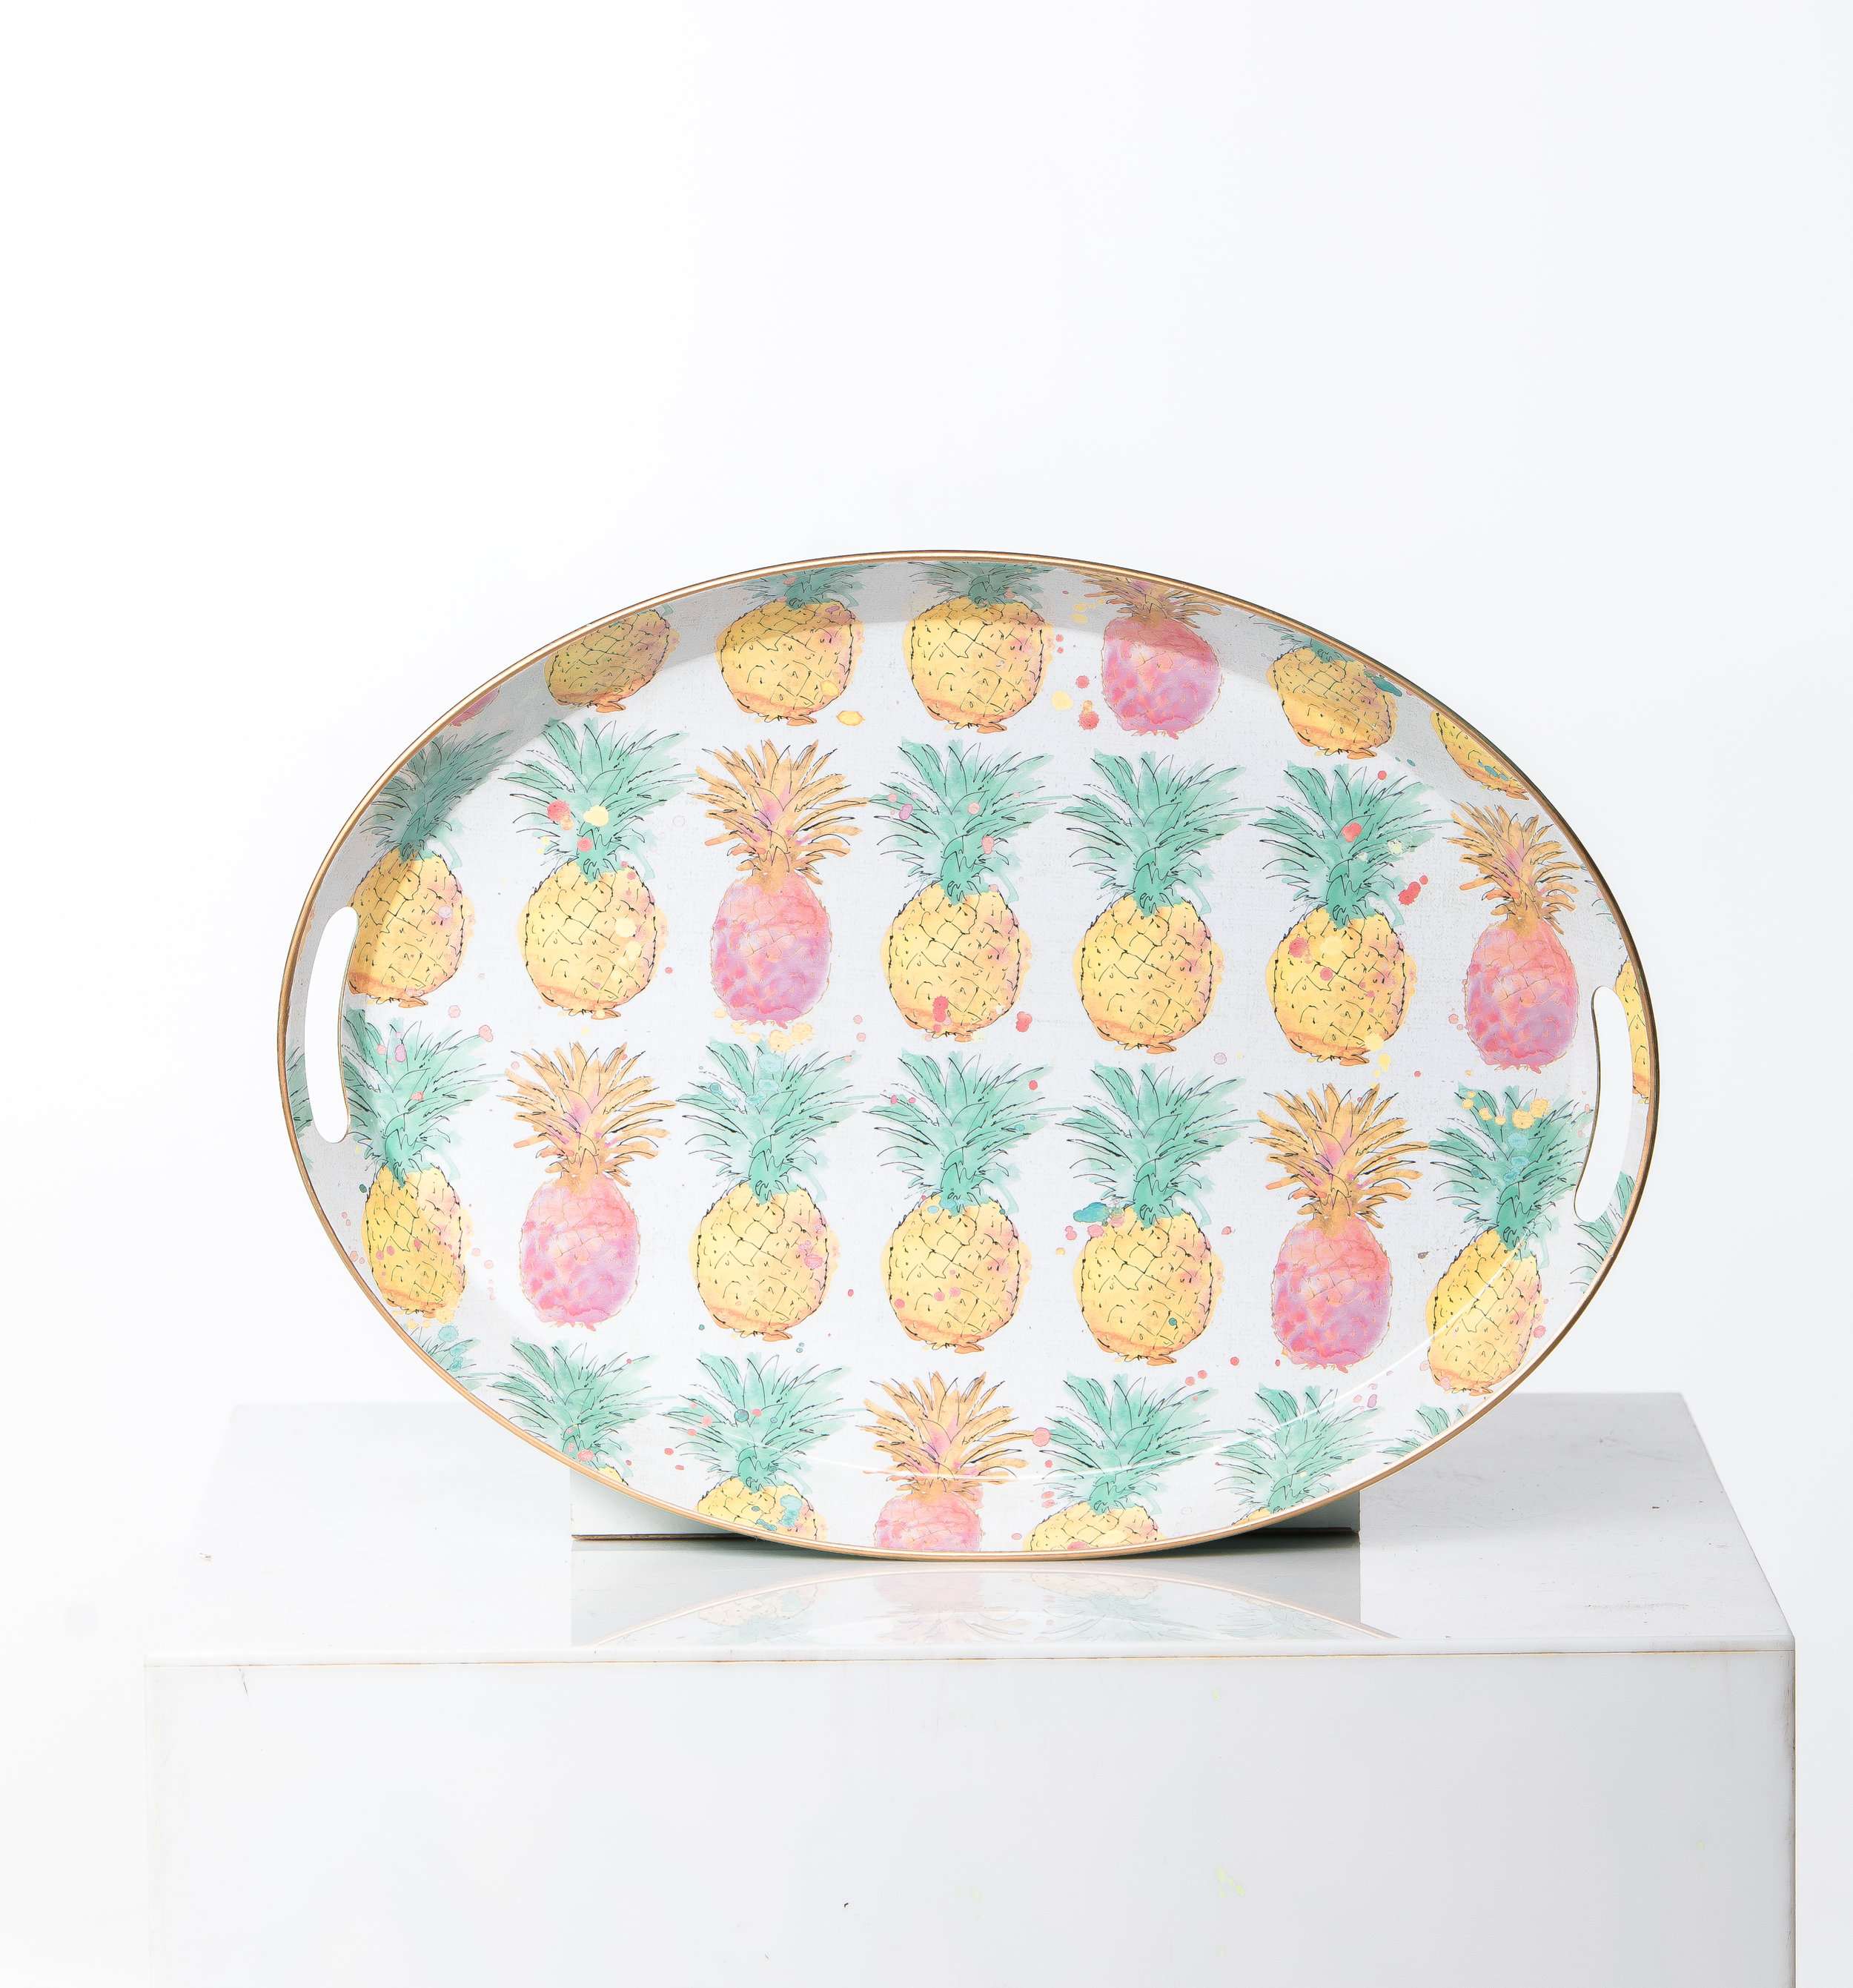 METAL PINAPPLE OVAL PLATTER